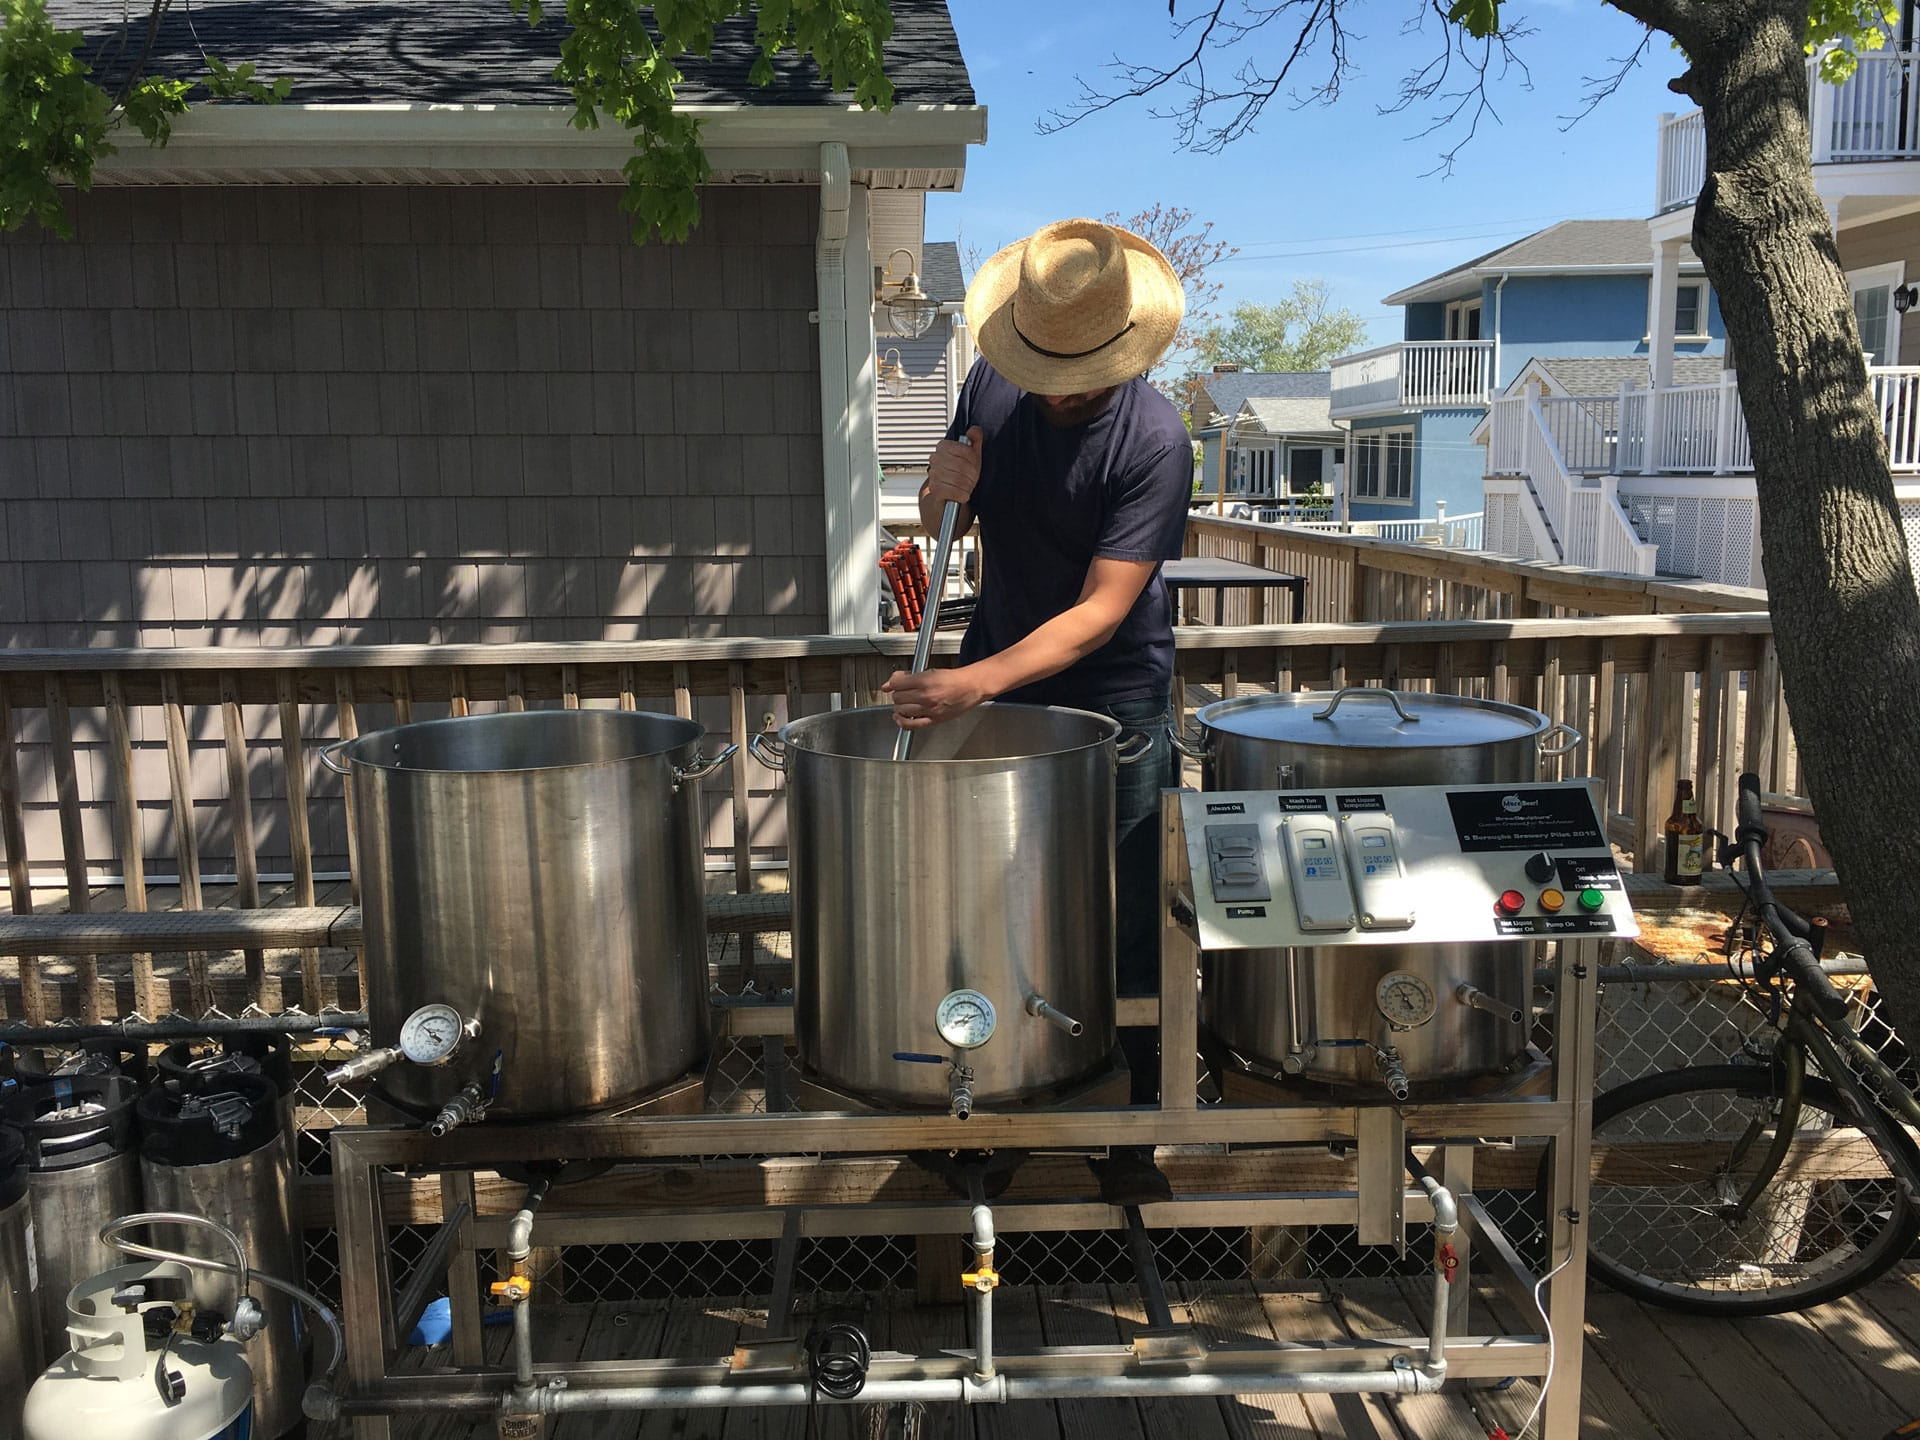 Beer being brewed outside